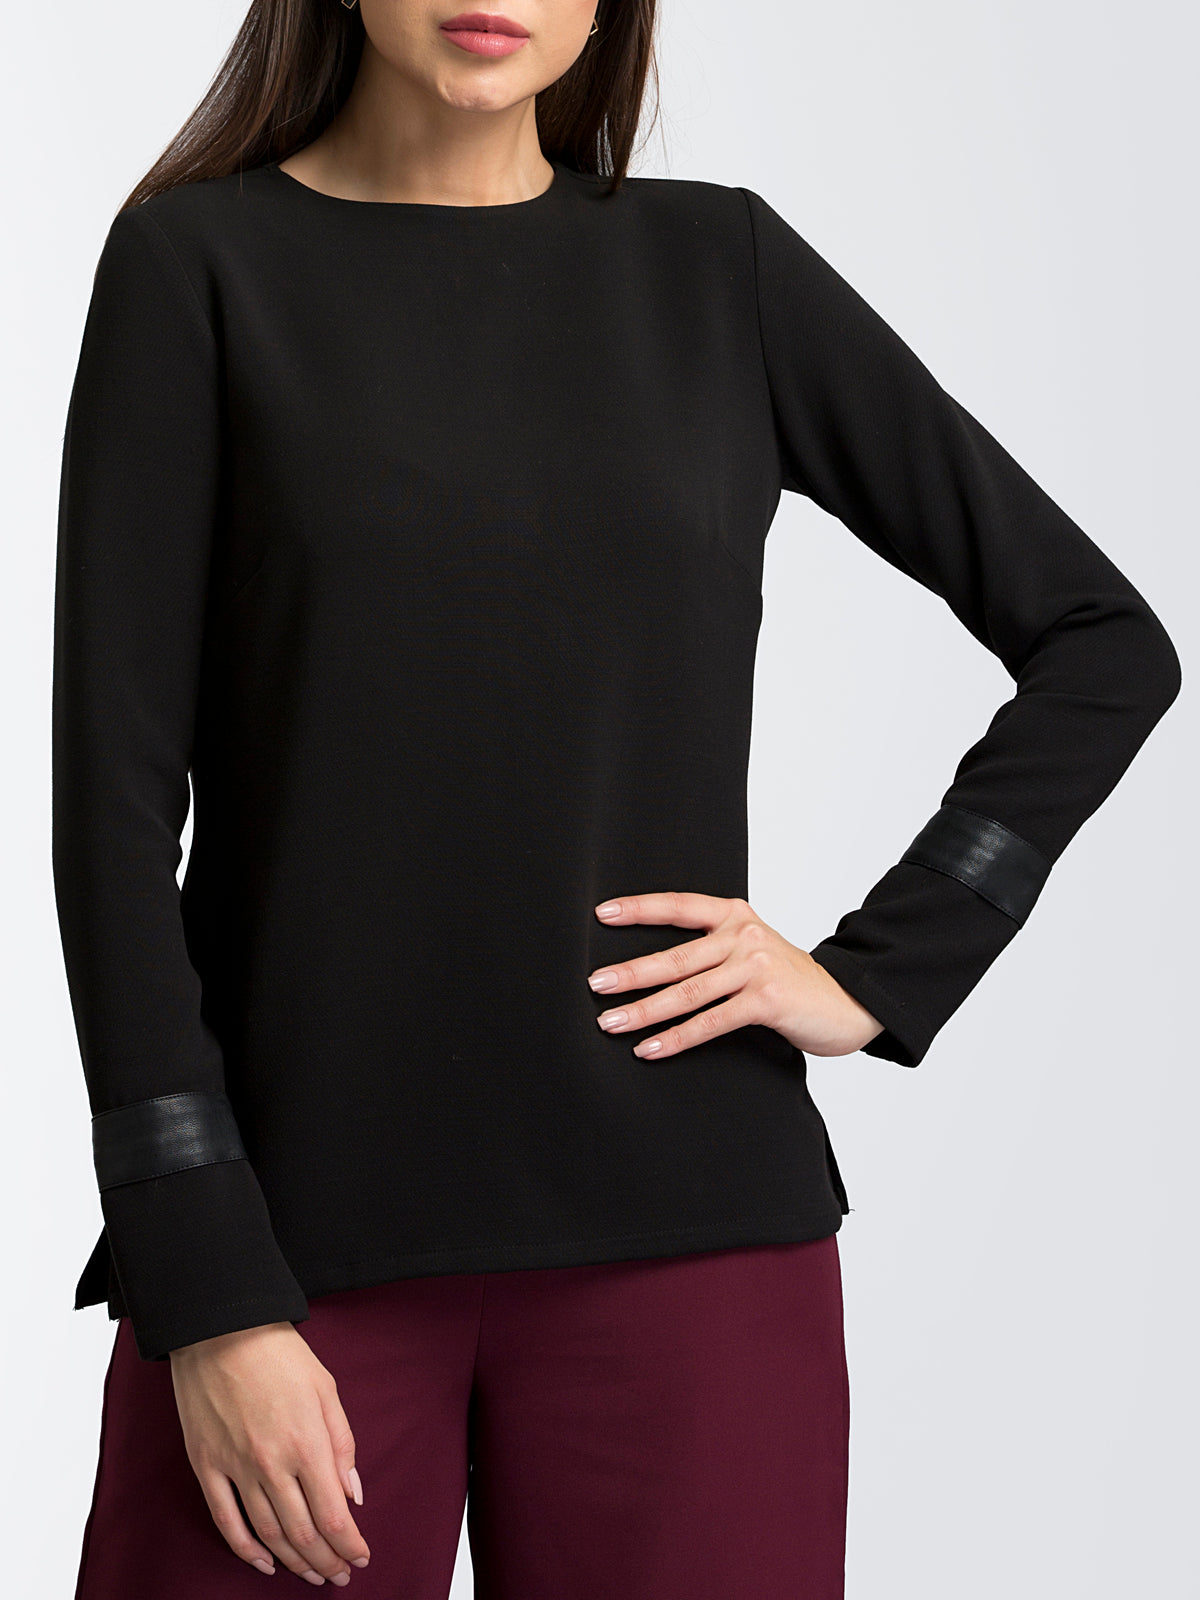 Full Sleeve Top With Faux Leather Details - Black